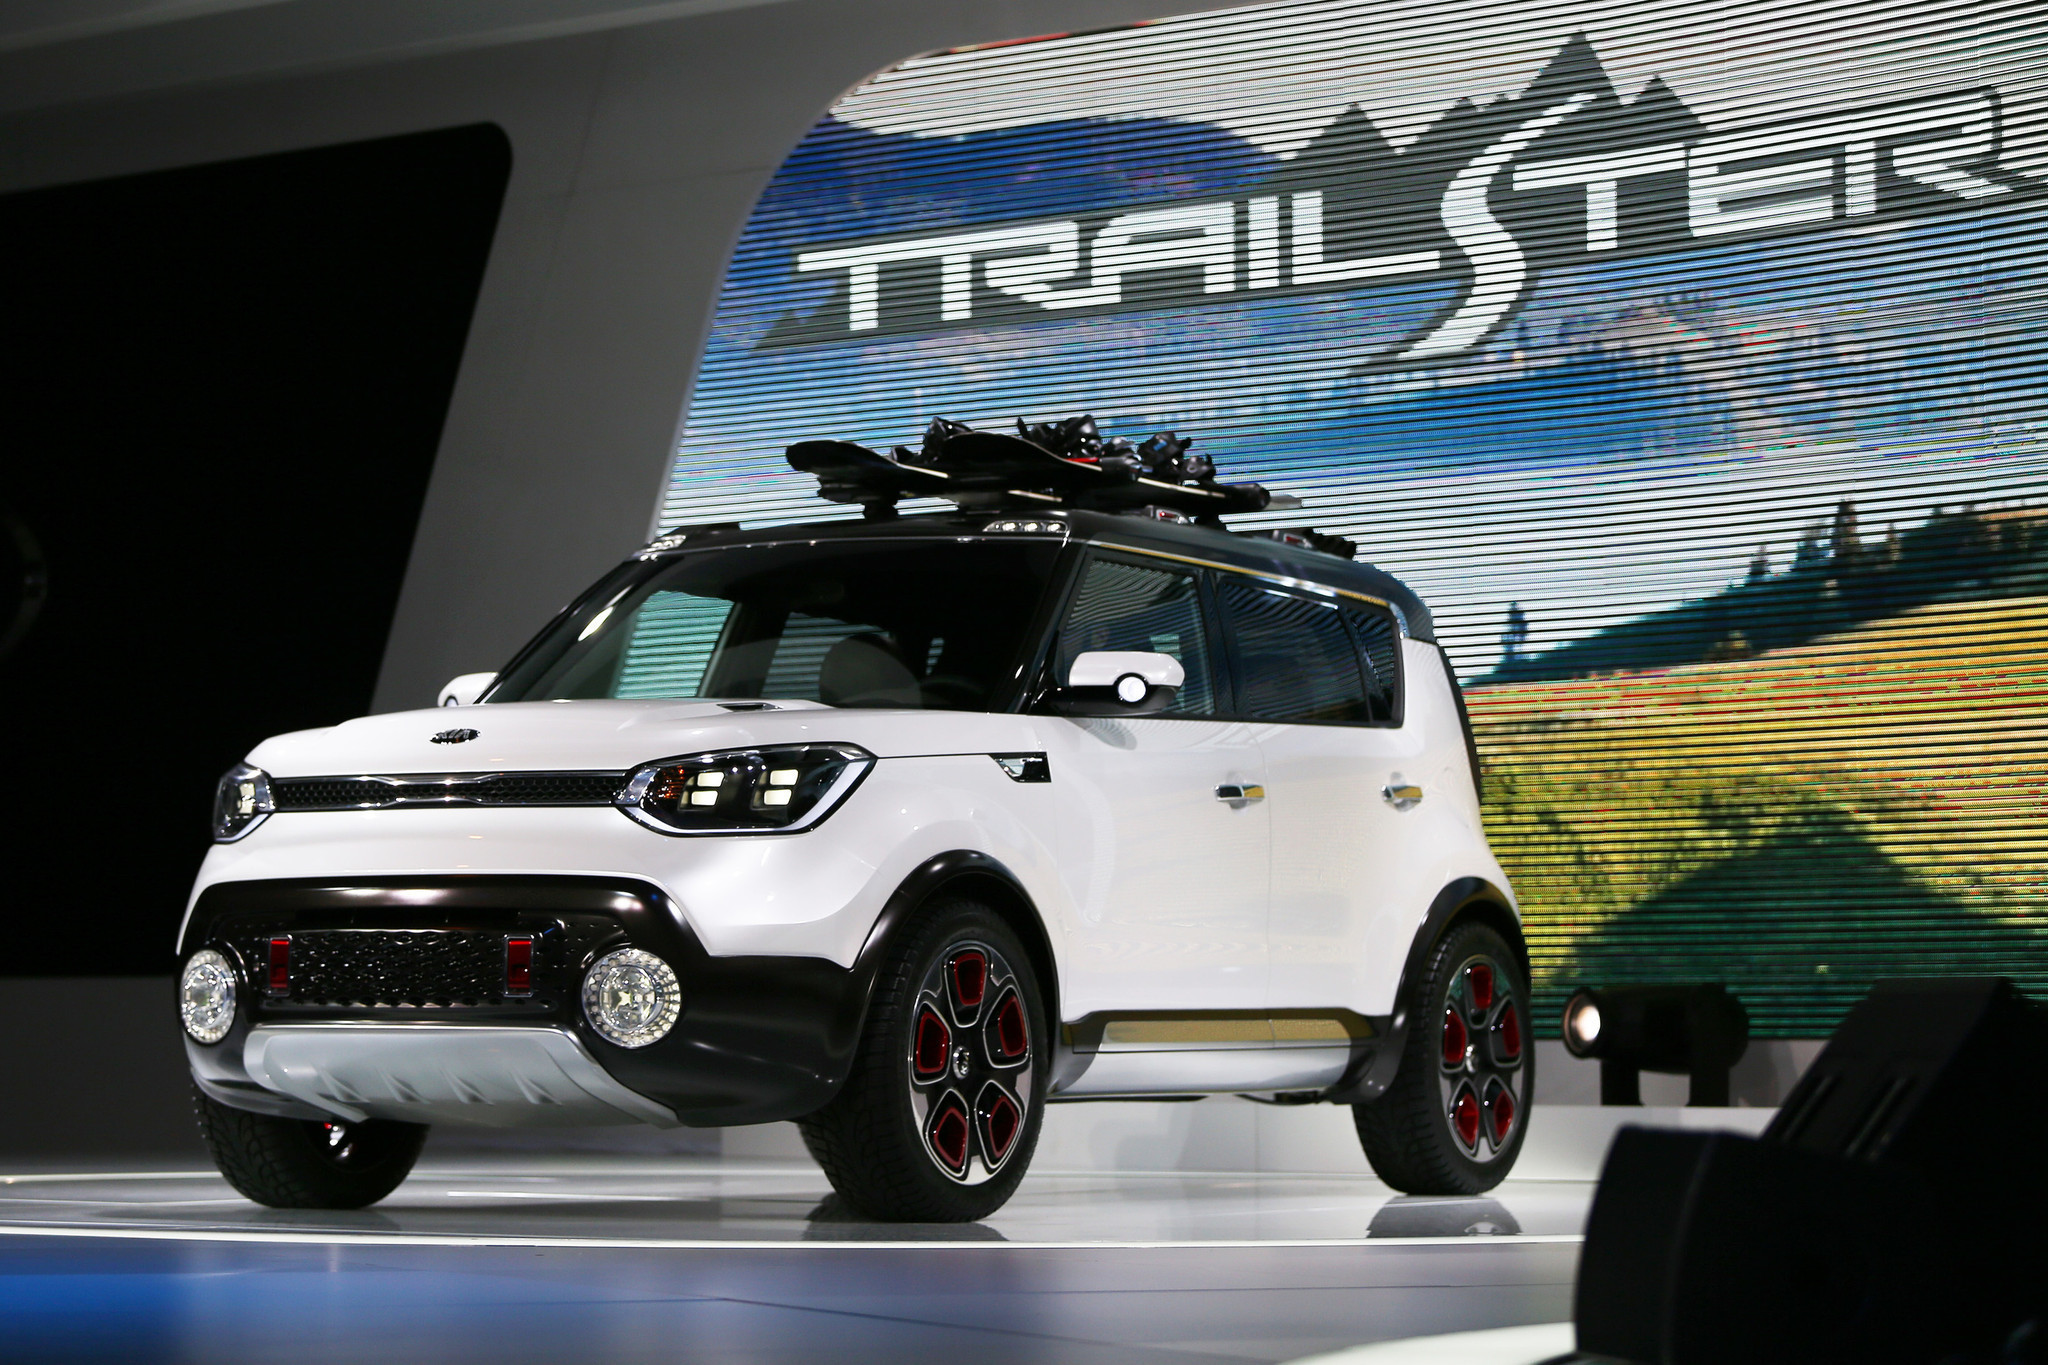 Kia Soul Awd >> Kia Shows Off Awd Soul Trailster At Chicago Auto Show Chicago Tribune